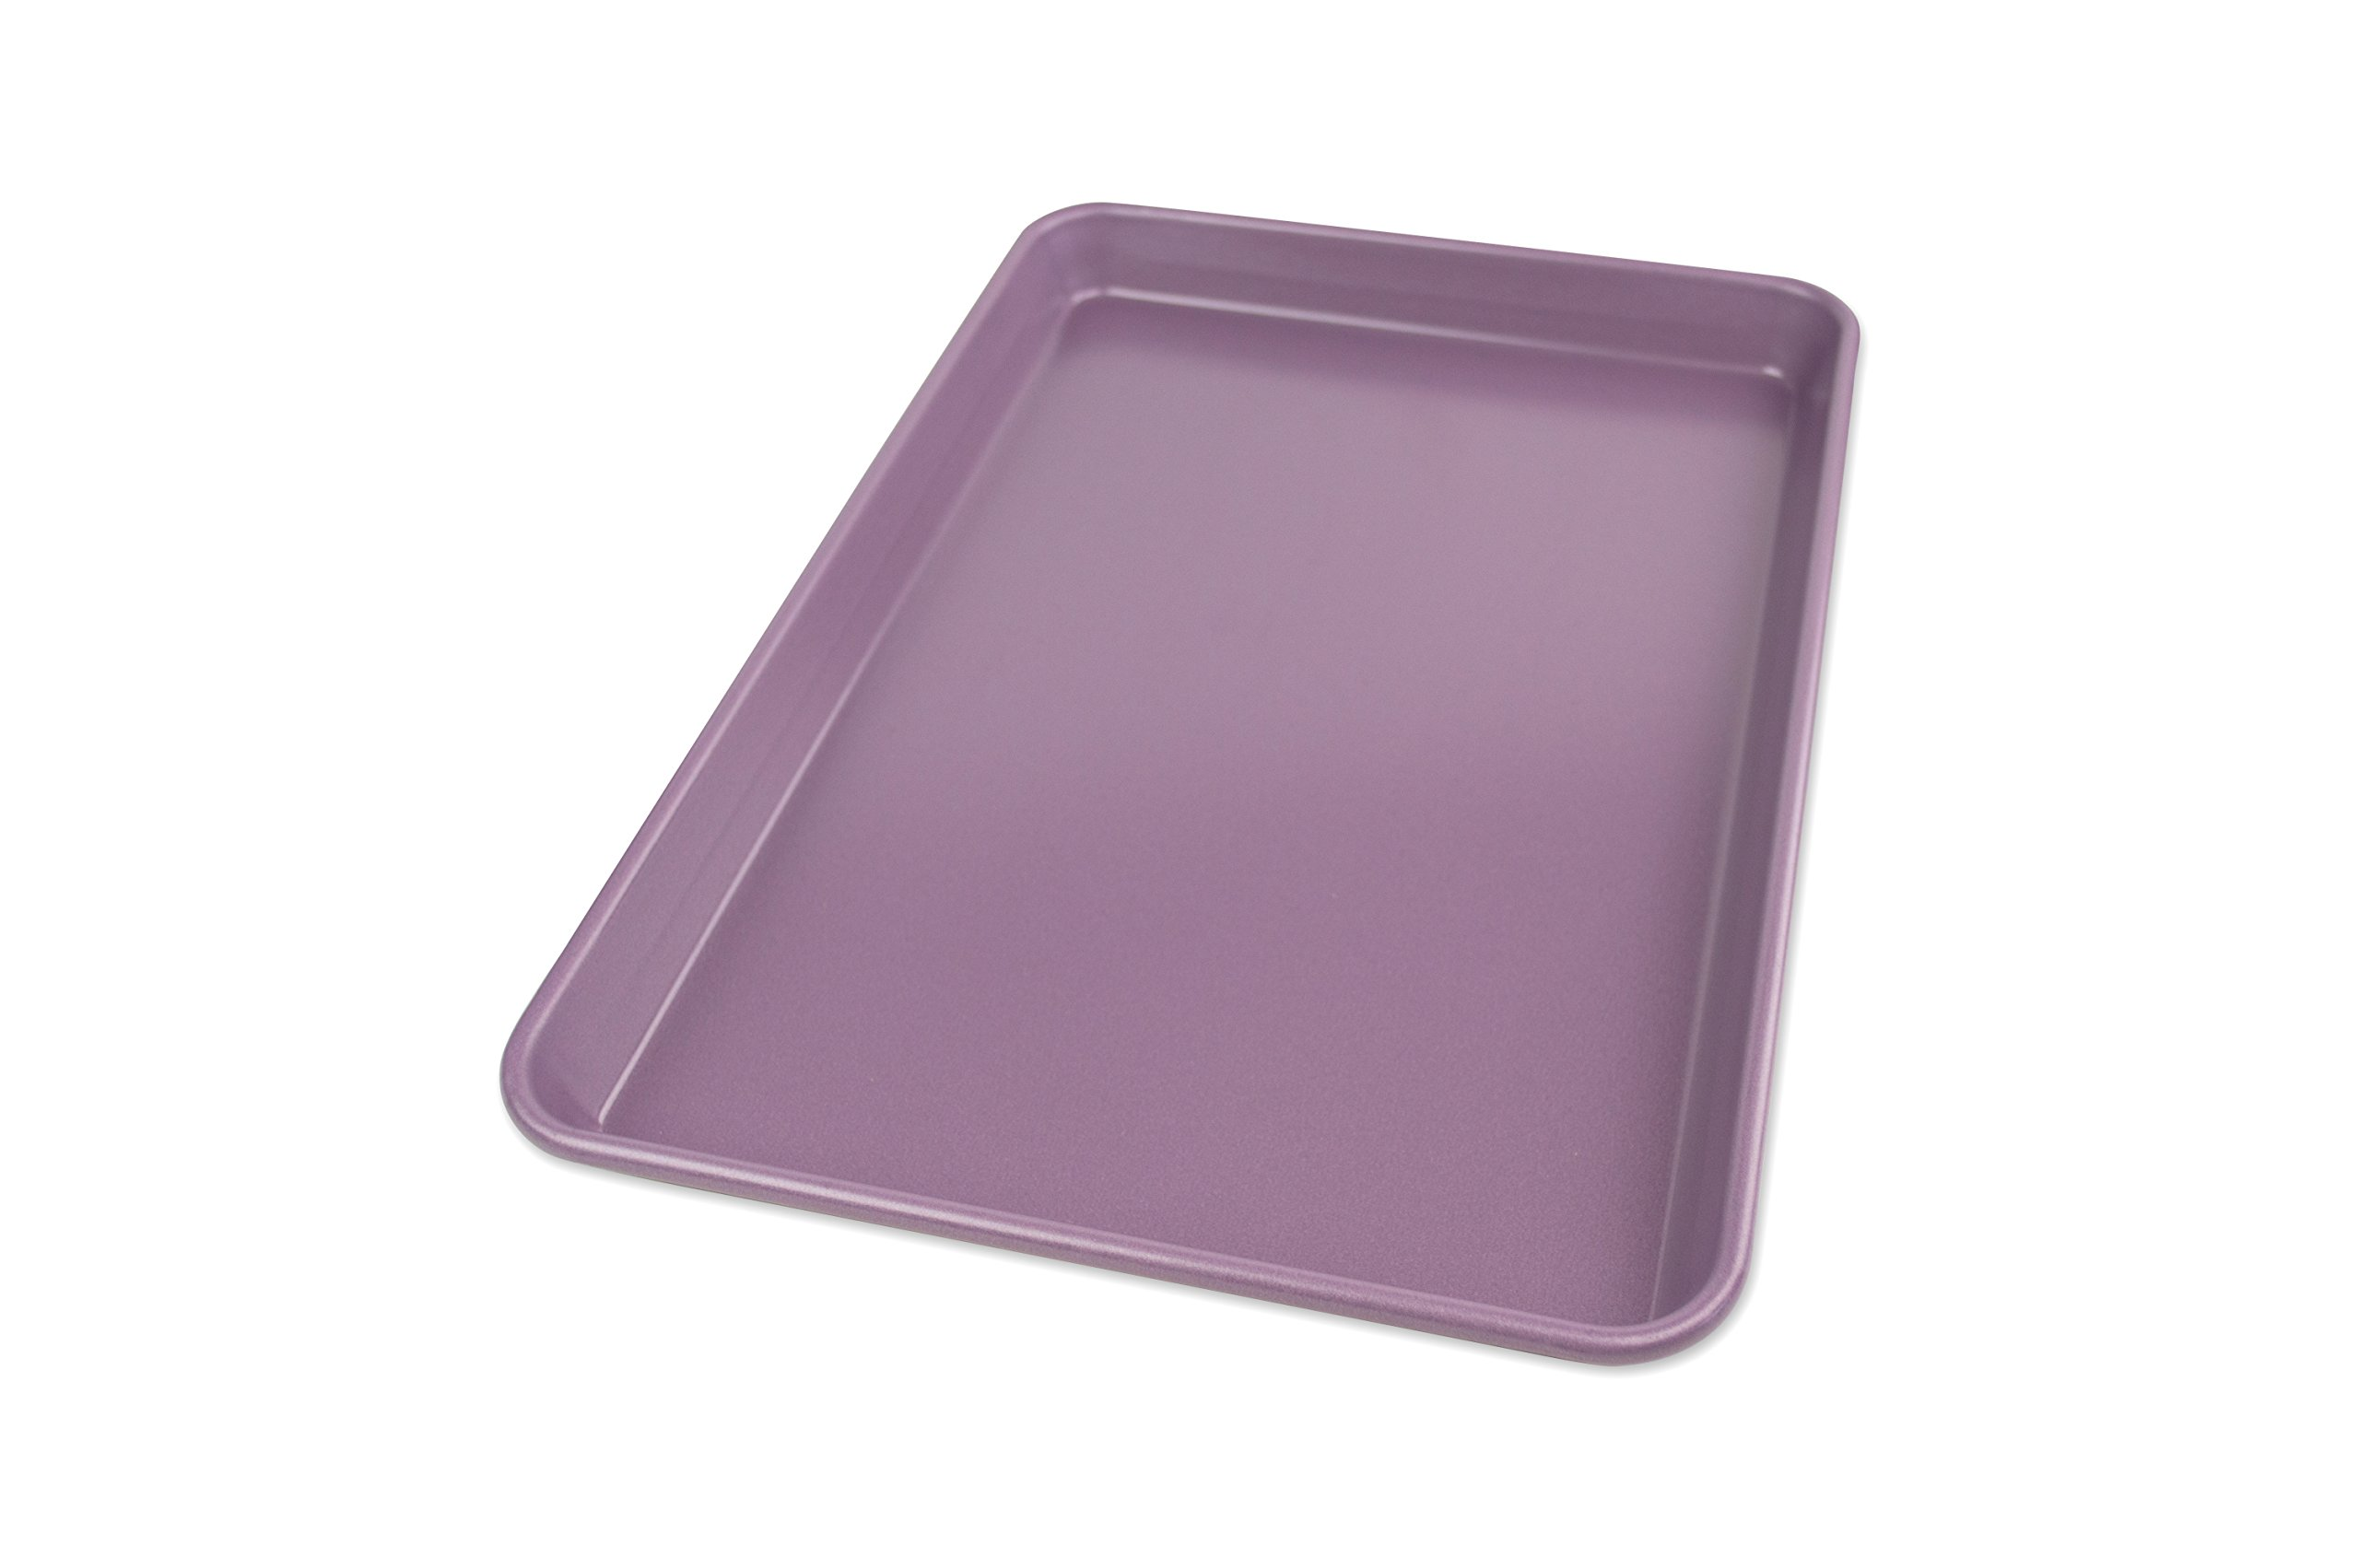 USA Pan 1040JR-AP-1 Allergy Id Nonstick Jelly Roll Baking Pan, Purple by USA Pan